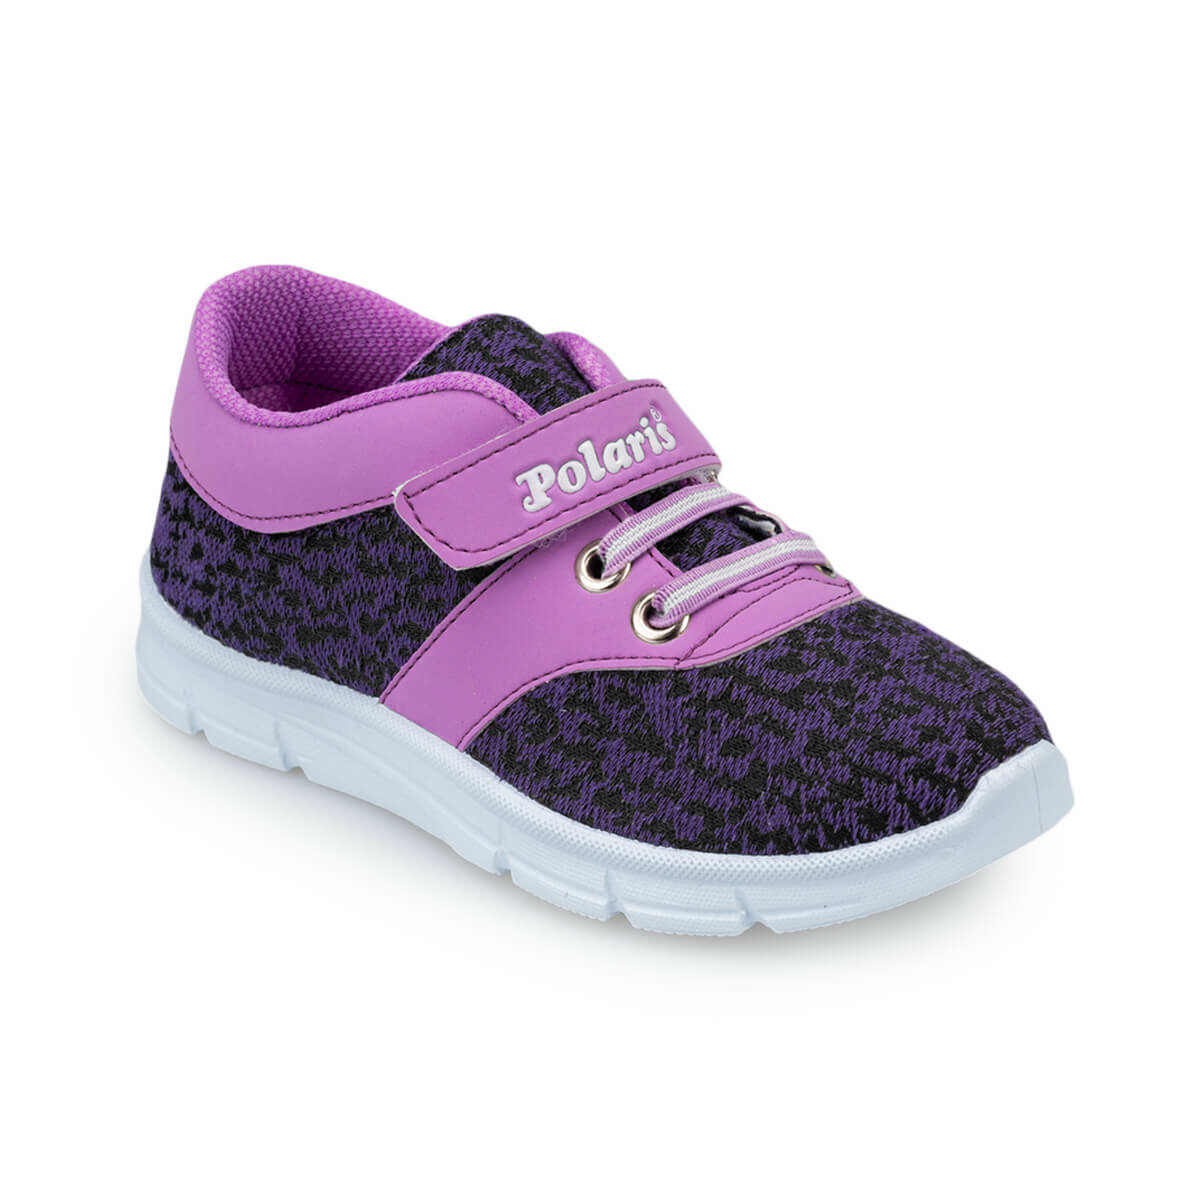 FLO 91.511140.P Purple Female Child Shoes Polaris